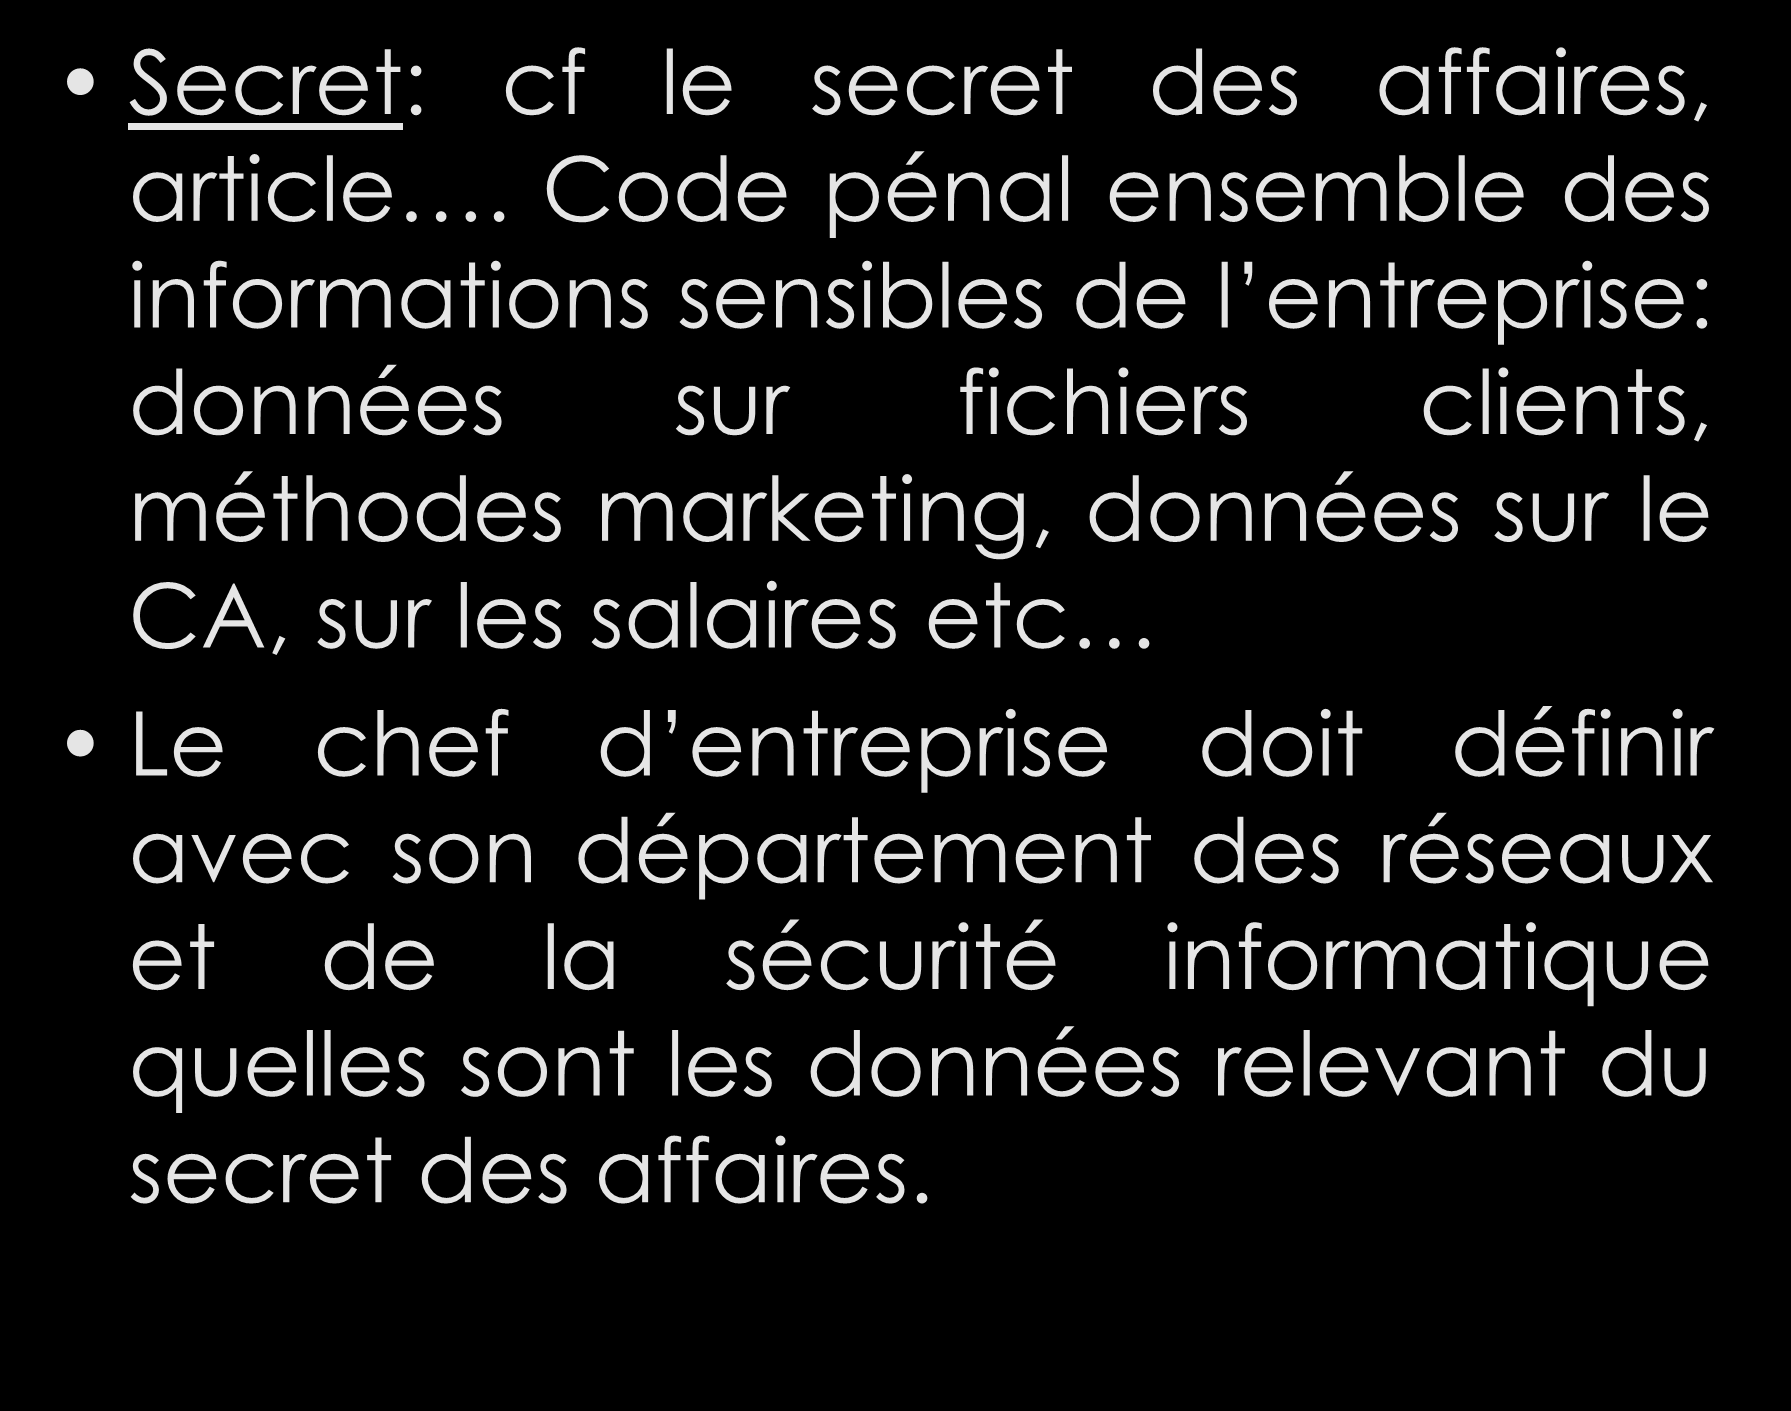 Secret: cf le secret des affaires, article.